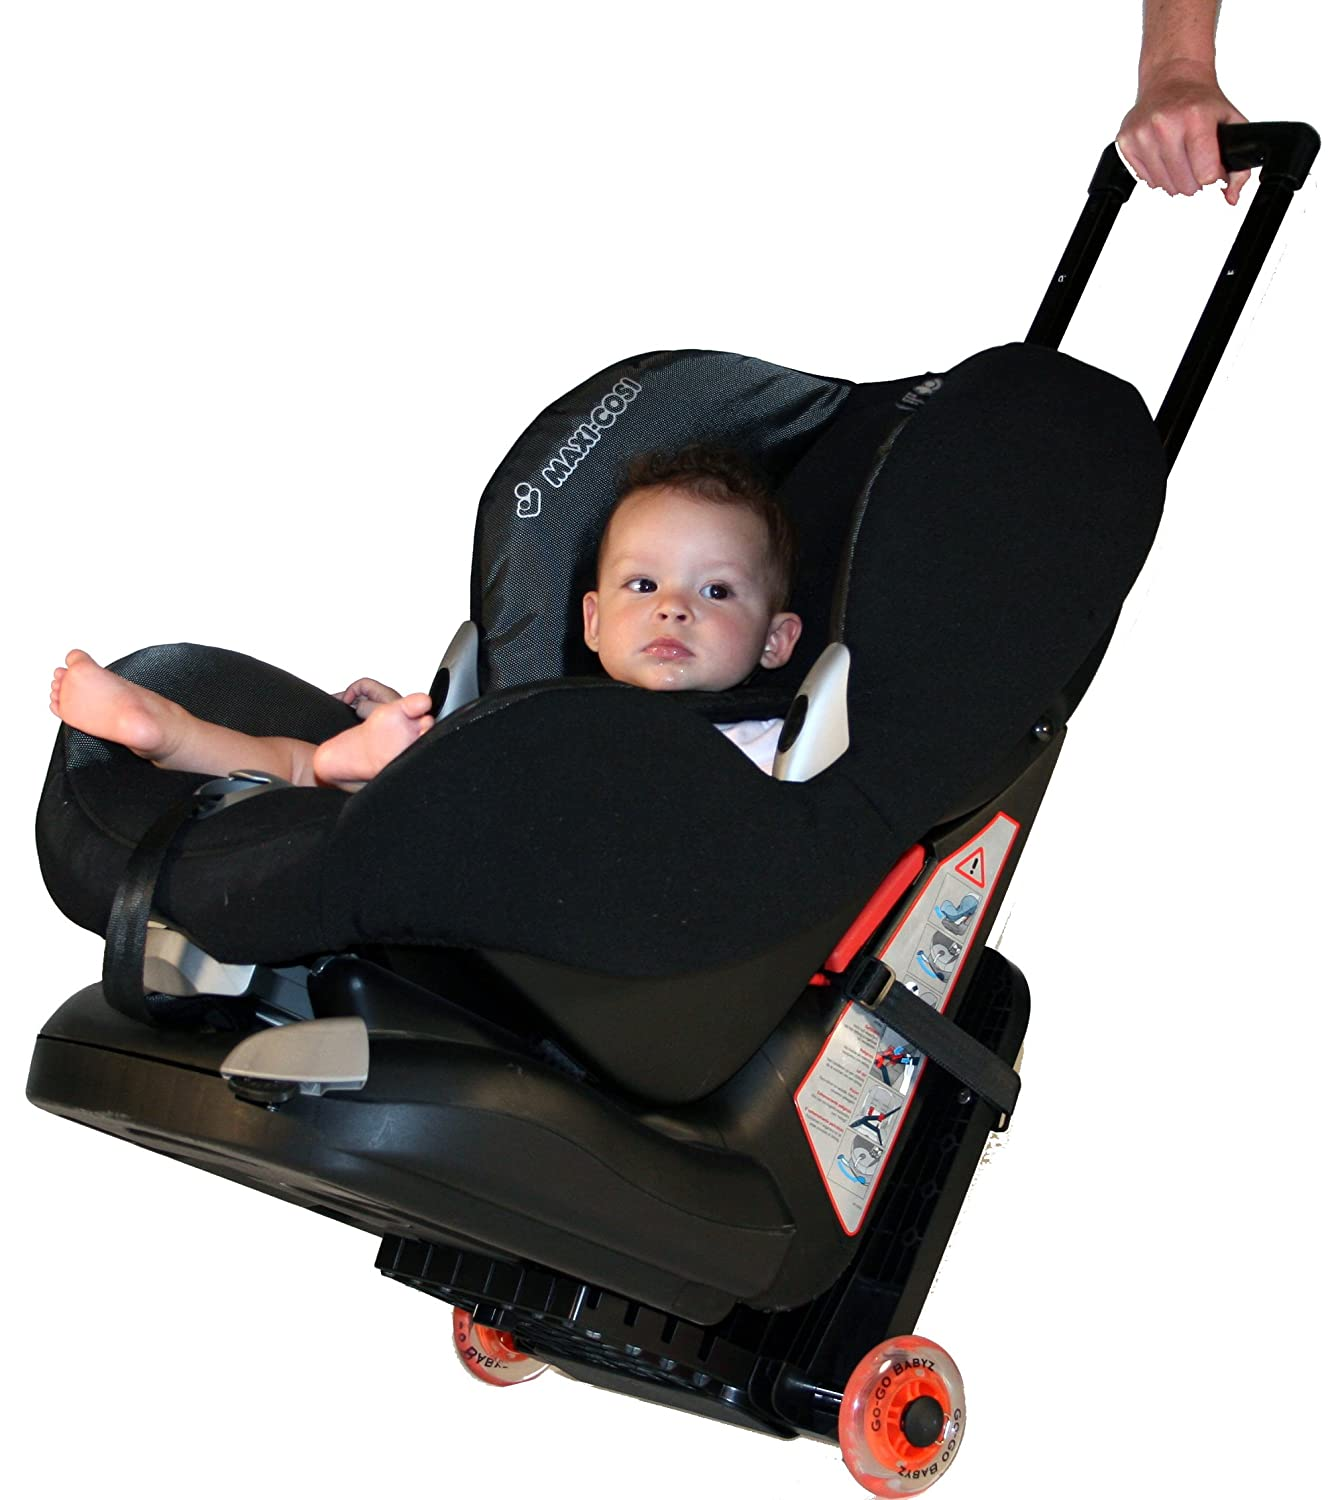 Amazon.com : GO-GO BABYZ TRAVELMATE Car Seat Travel Stroller for ...